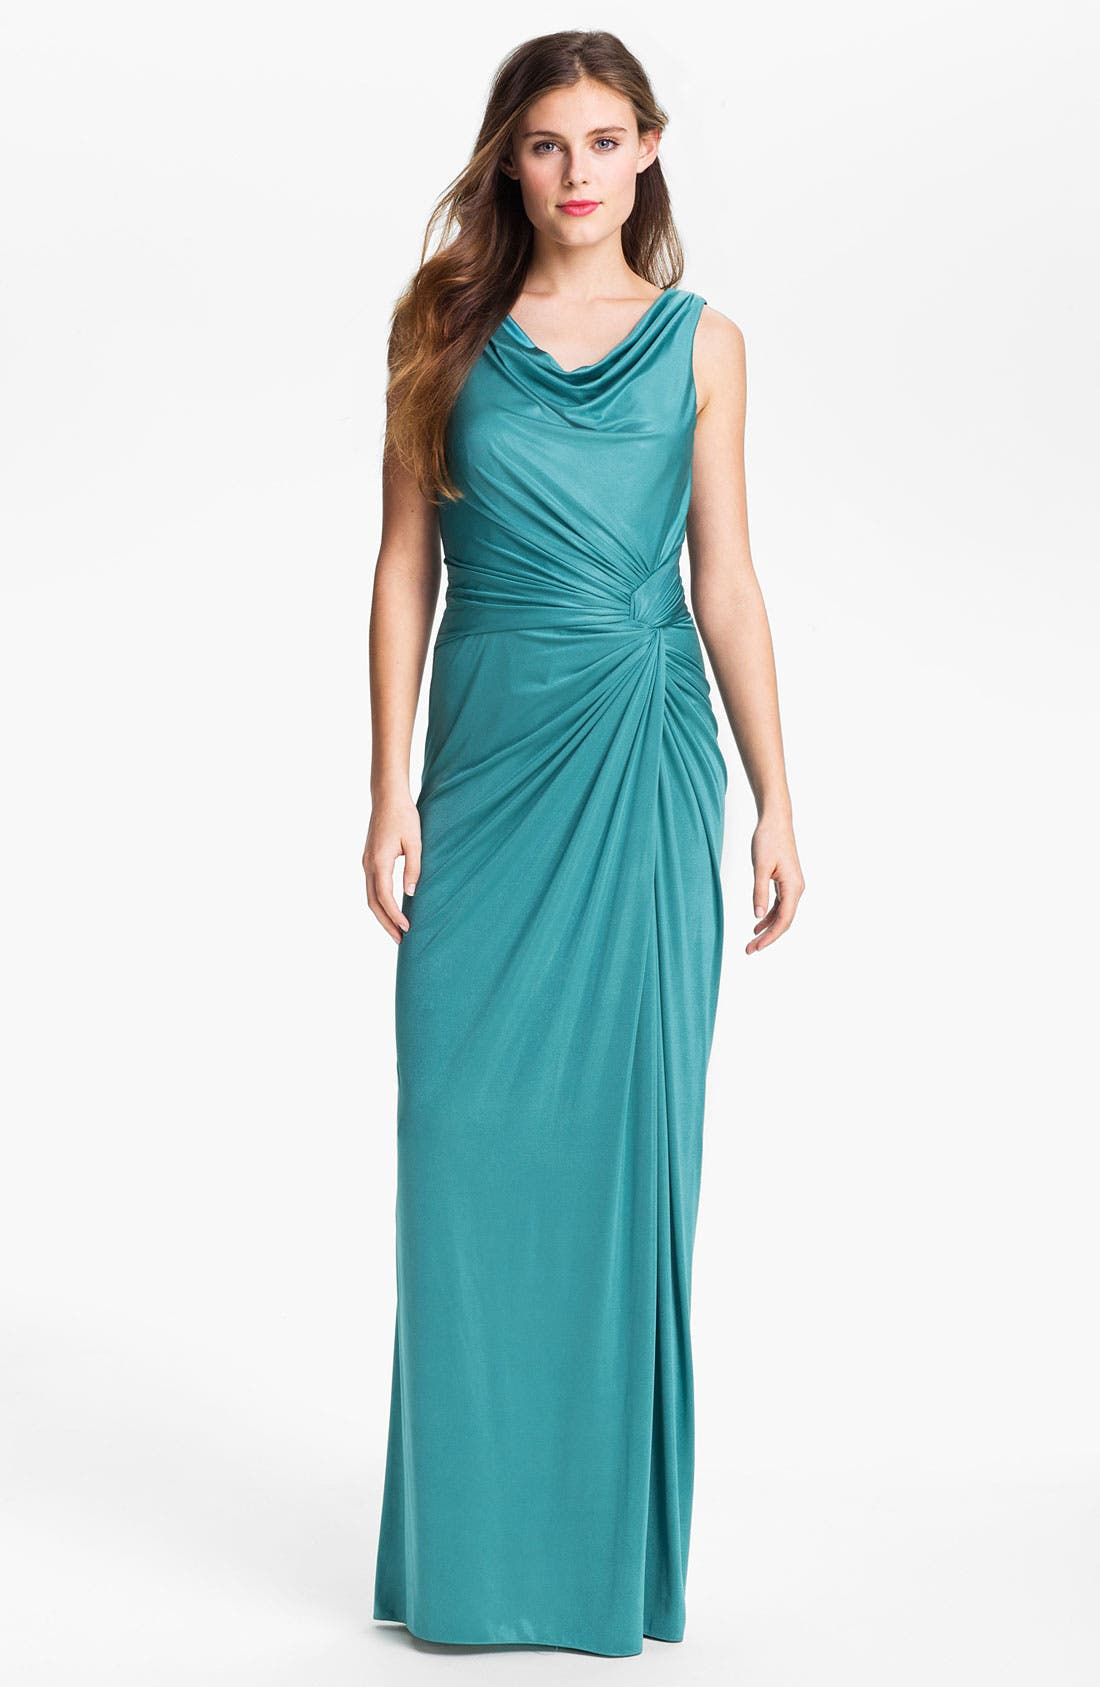 Alternate Image 1 Selected - Adrianna Papell Draped Front Twist Charmeuse Gown